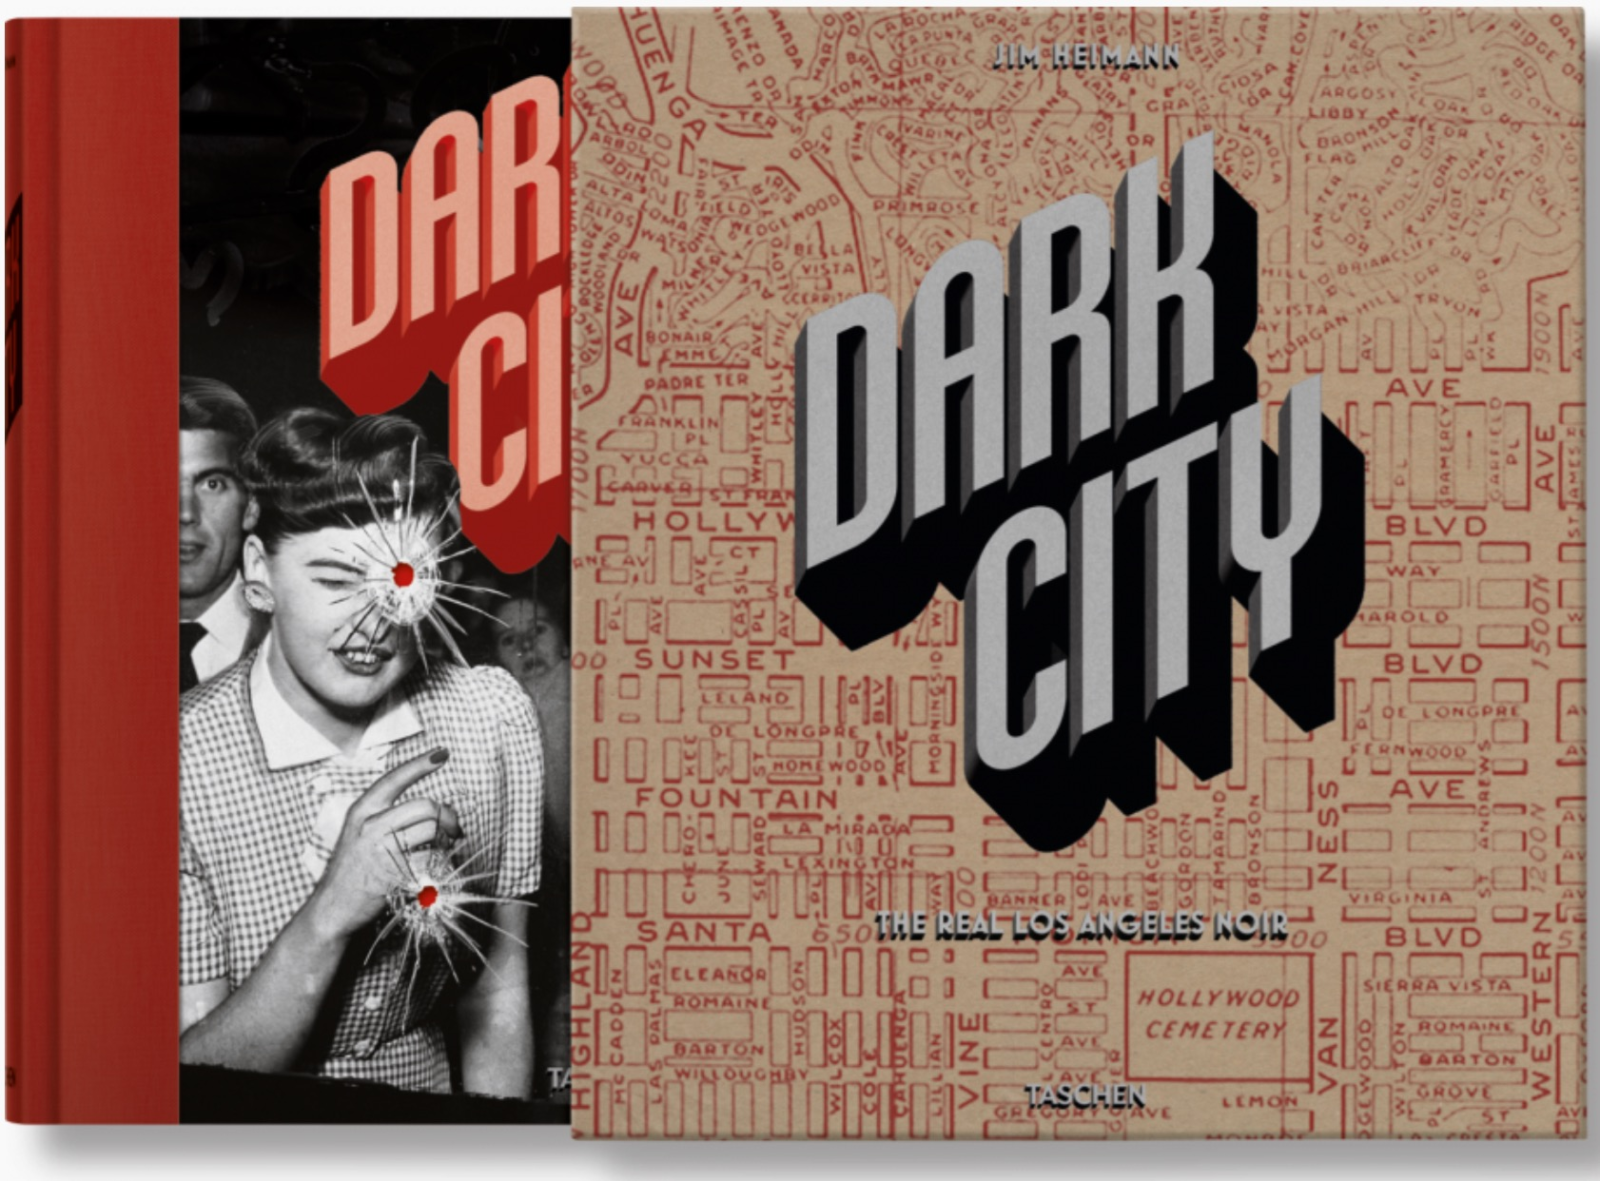 « Dark City. The Real Los Angeles Noir » (c)Jim Heimann, Les fans de la démentielle œuvre littéraire de James Ellroy